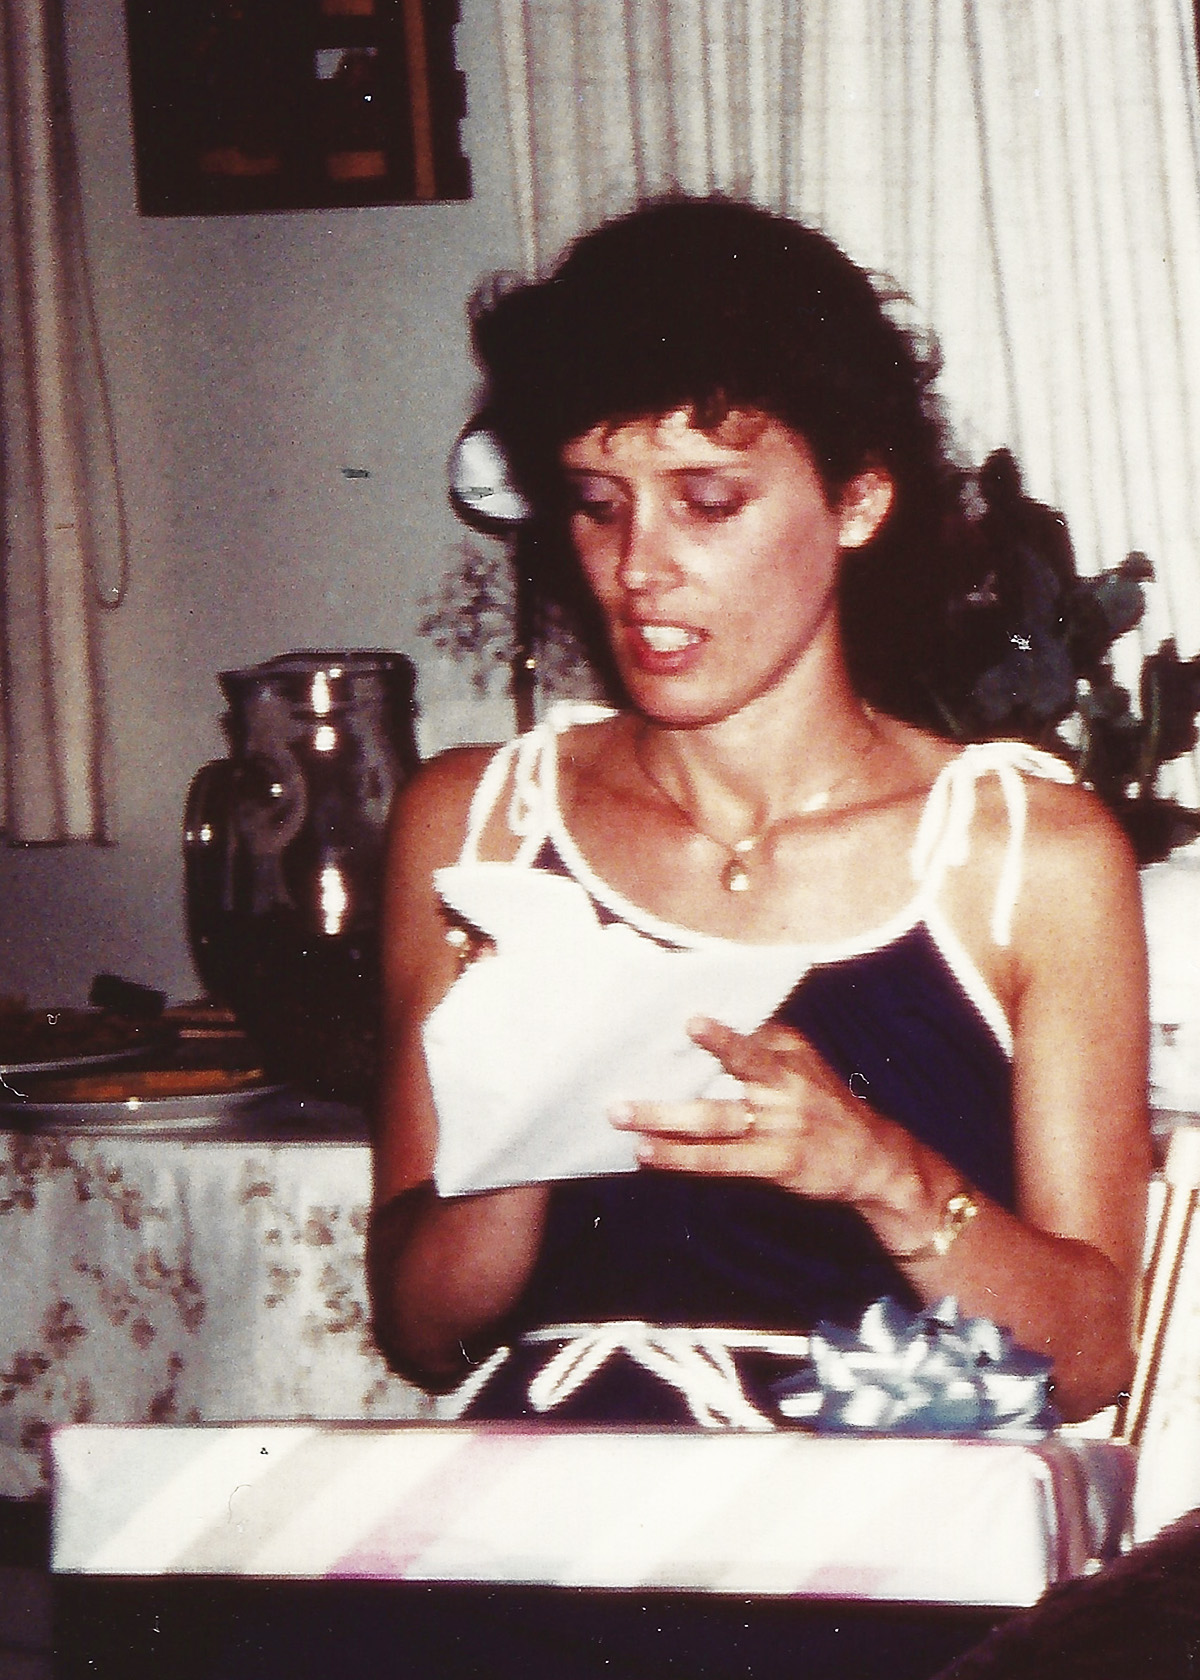 Opening wedding gifts a long time ago